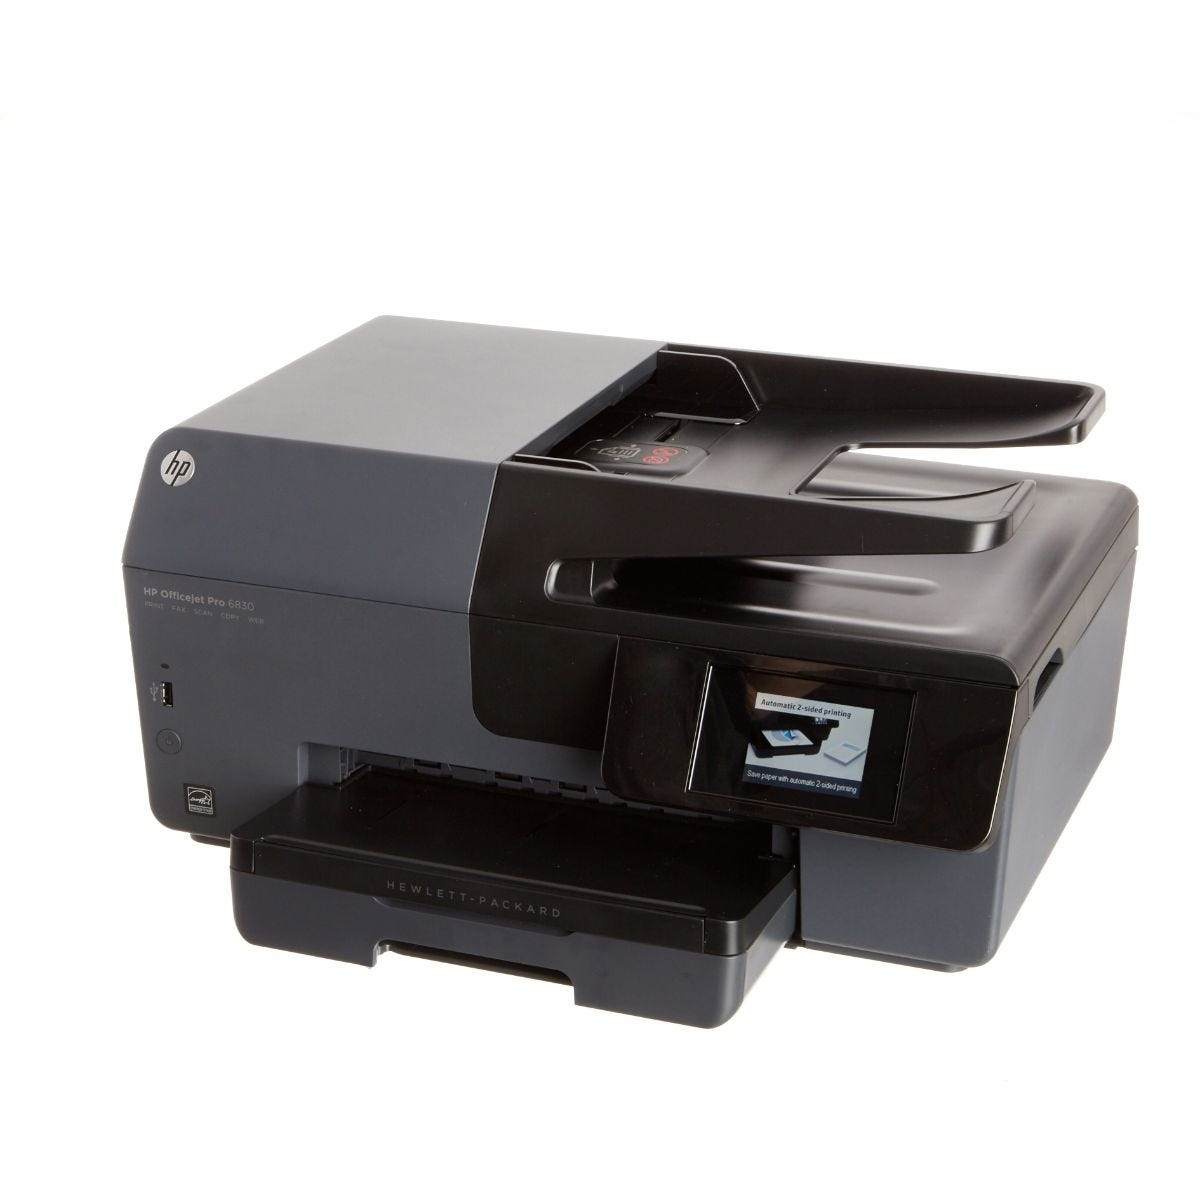 Image of HP Officejet Pro 6830 e-All-in-One Printer